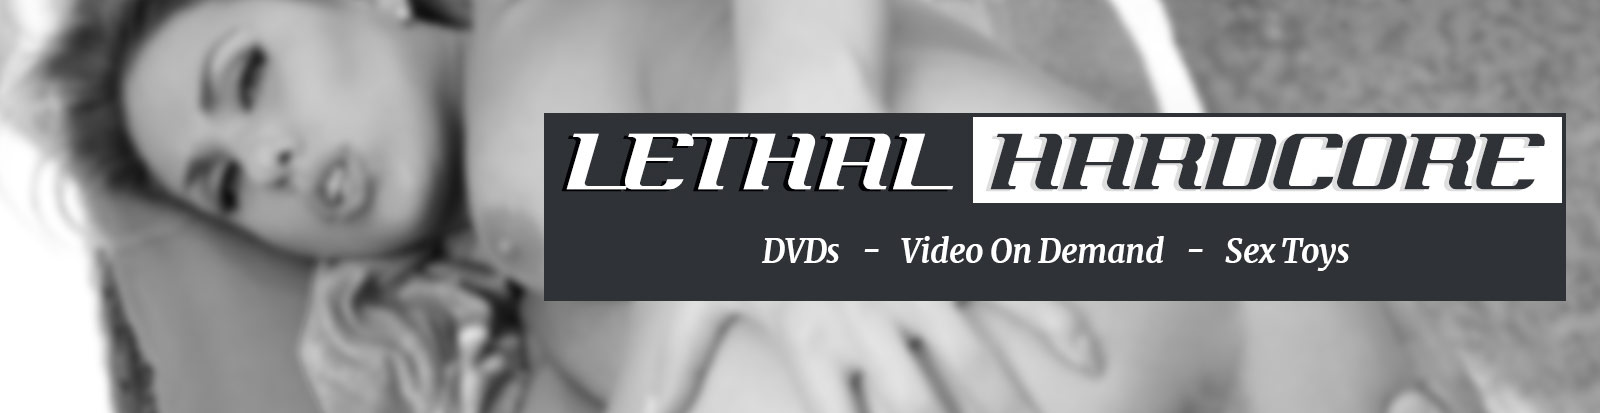 Lethal Hardcore  DVD, sex toy and Streaming Porn Video on Demand